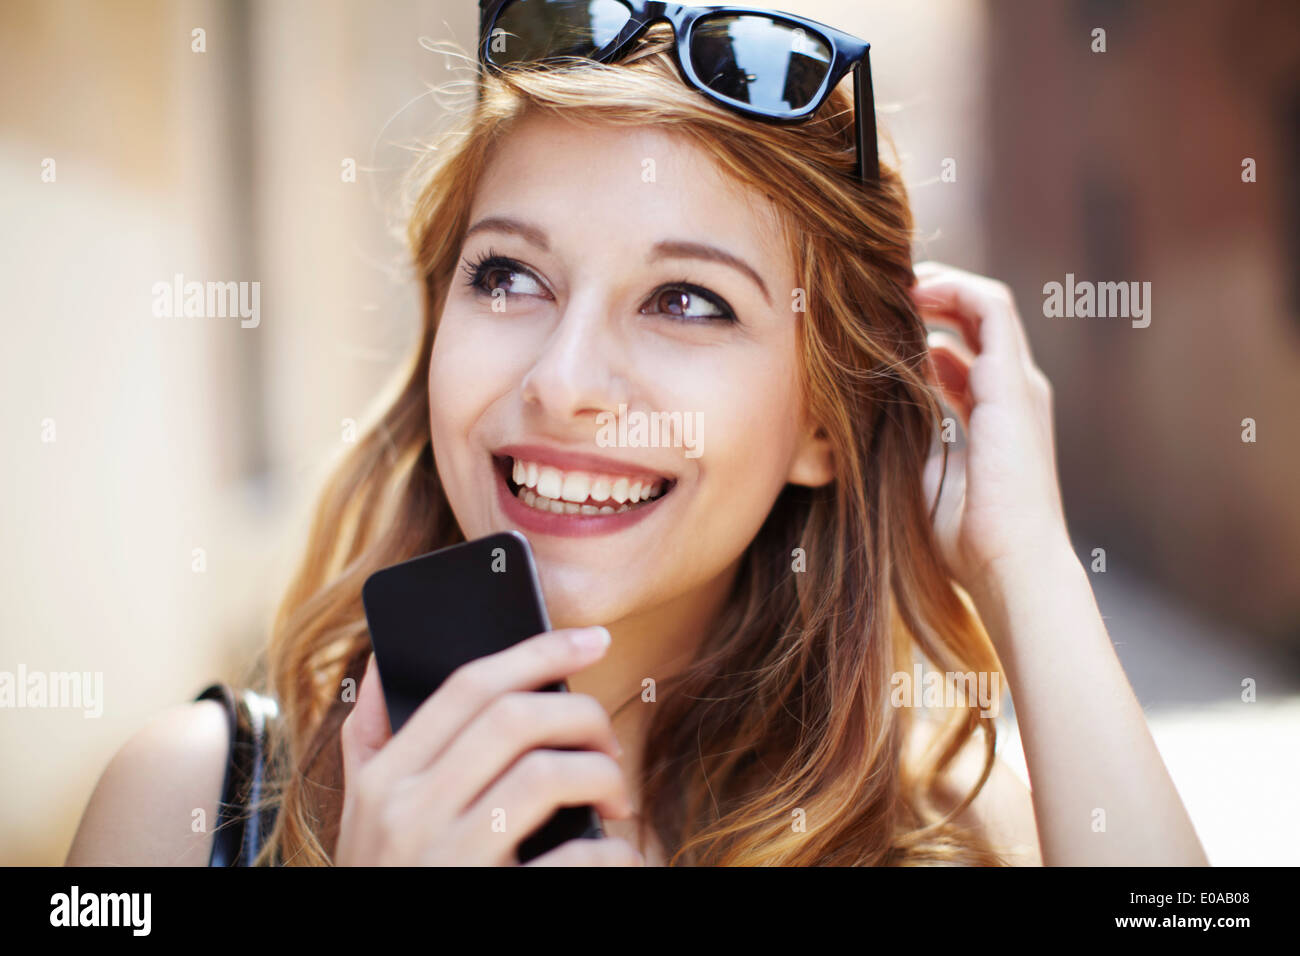 Sophisticated young woman with smartphone looking up - Stock Image